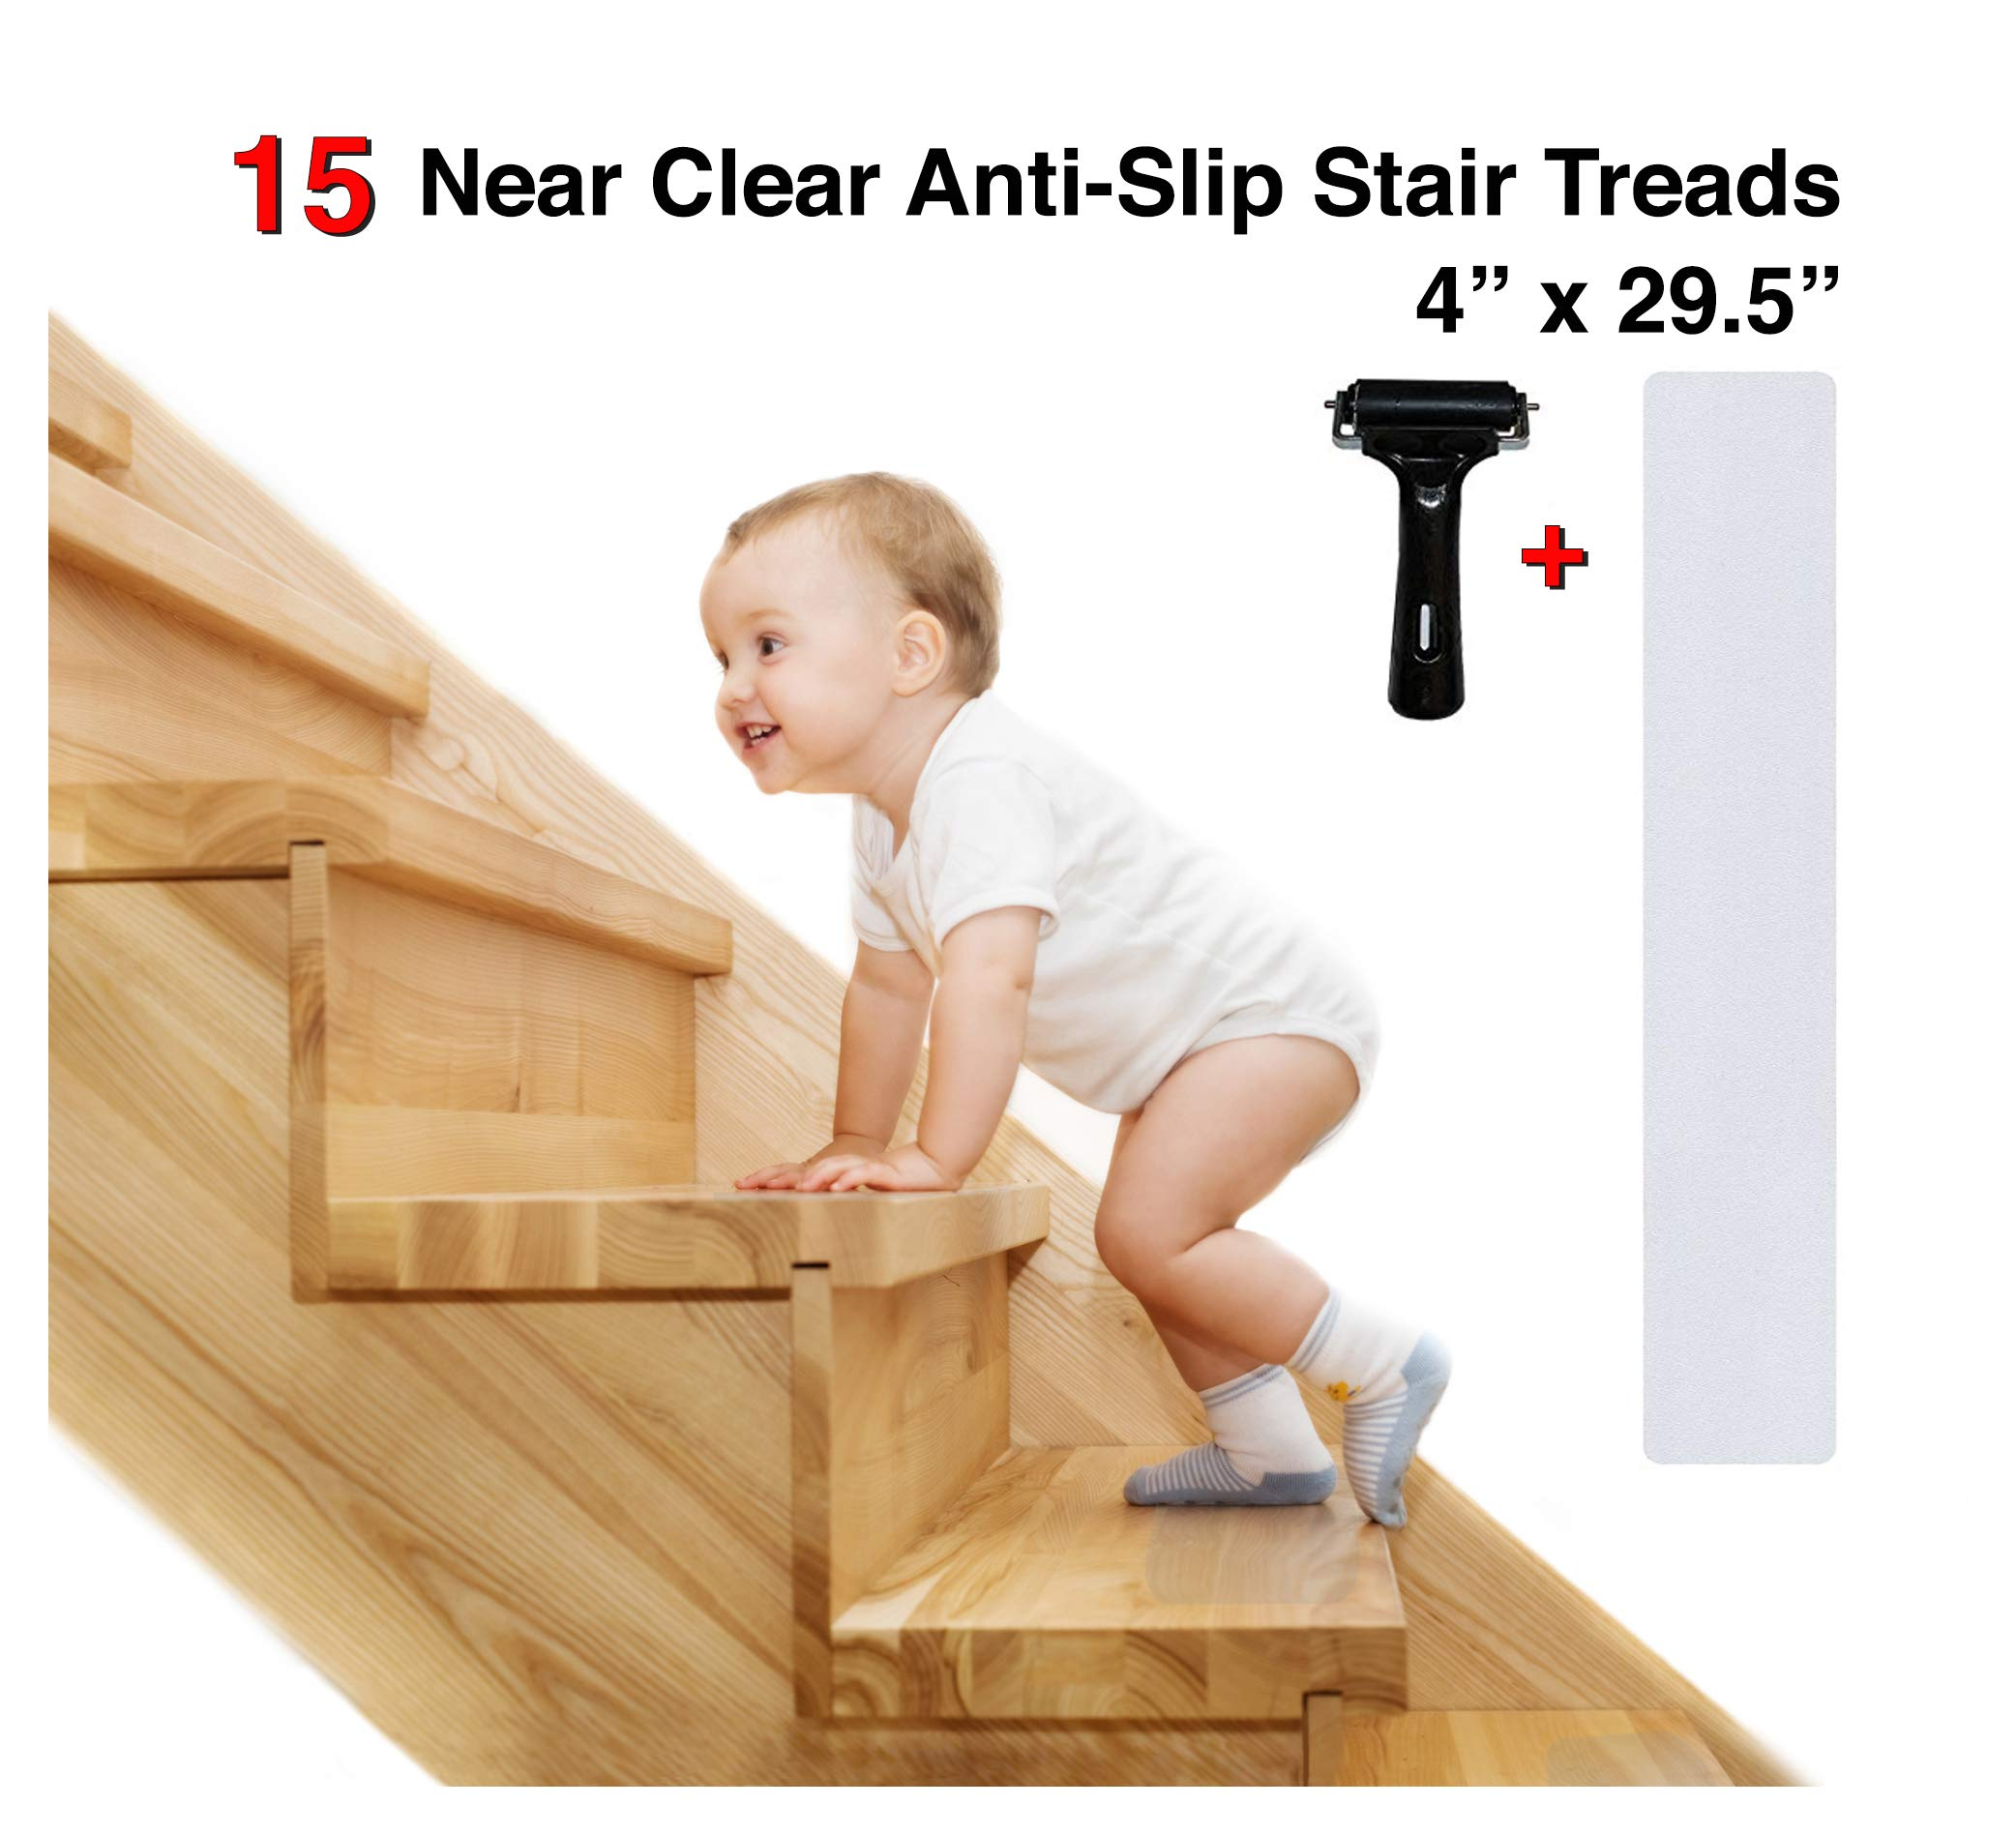 Anti Slip Stair Treads Tape - Pre Cut, 4'' x 29.5 inches | Invisible Non Slip Traction Grip Tape for Wooden Stairs and Hardwood | (Pack of 15) Floor Protection Stickers - Roller Included